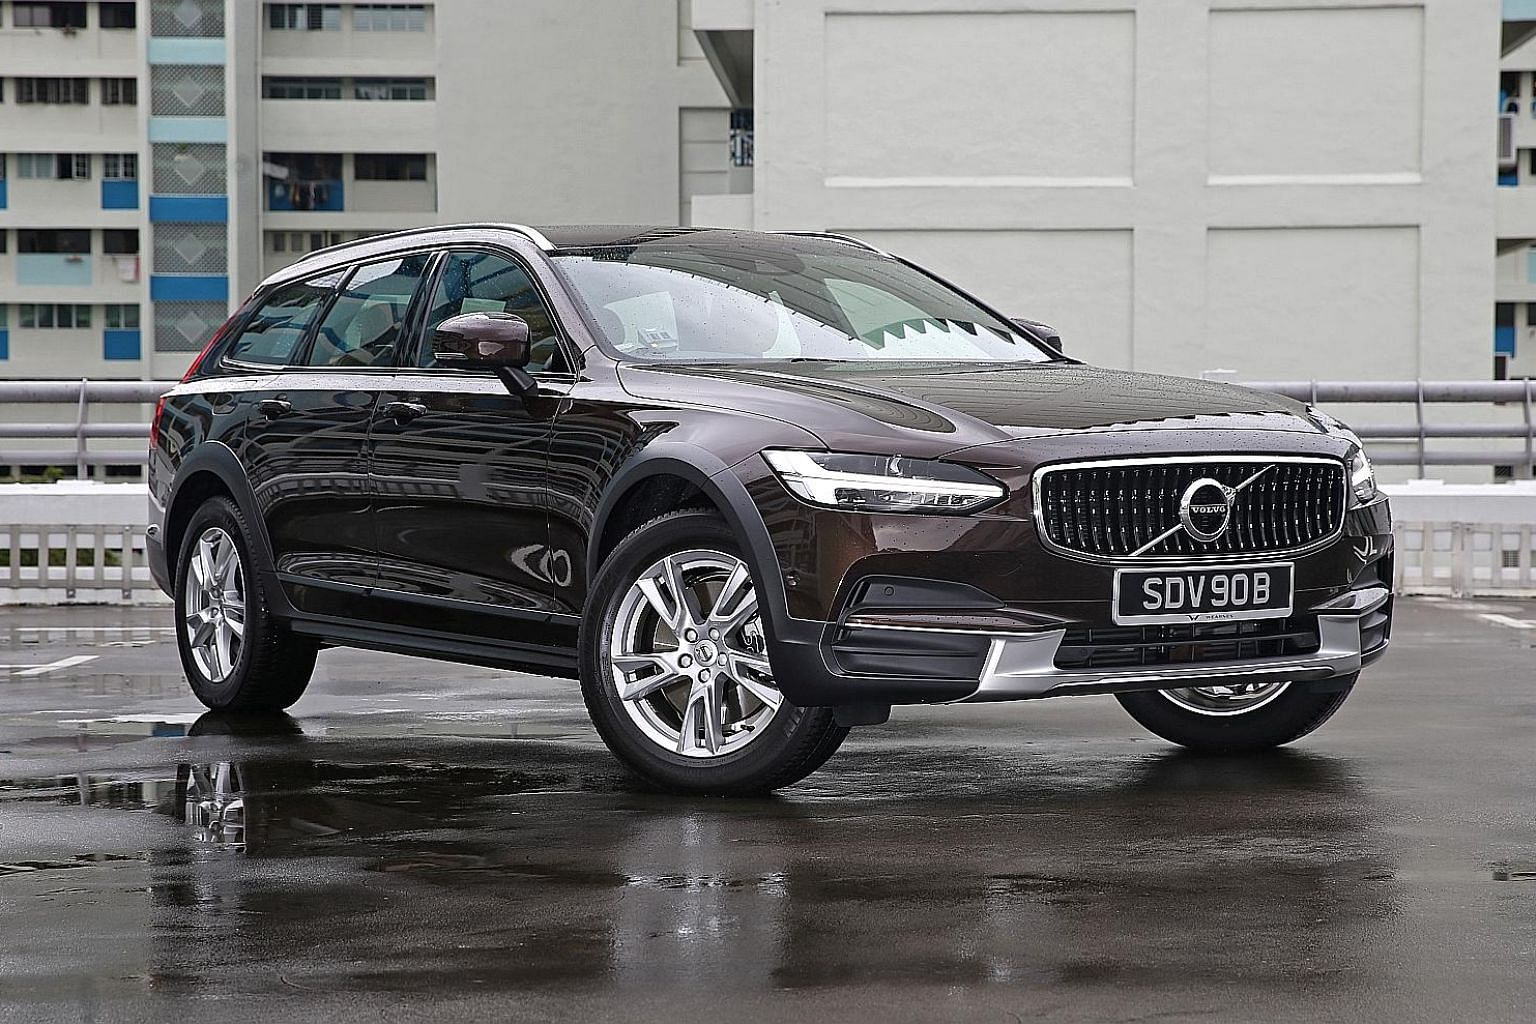 Volvo V90 Cross Country's raised chassis makes it easier to get into and out of. Its cockpit is dominated by a 9-inch iPad-style infotainment touchscreen and its boot is spacious.